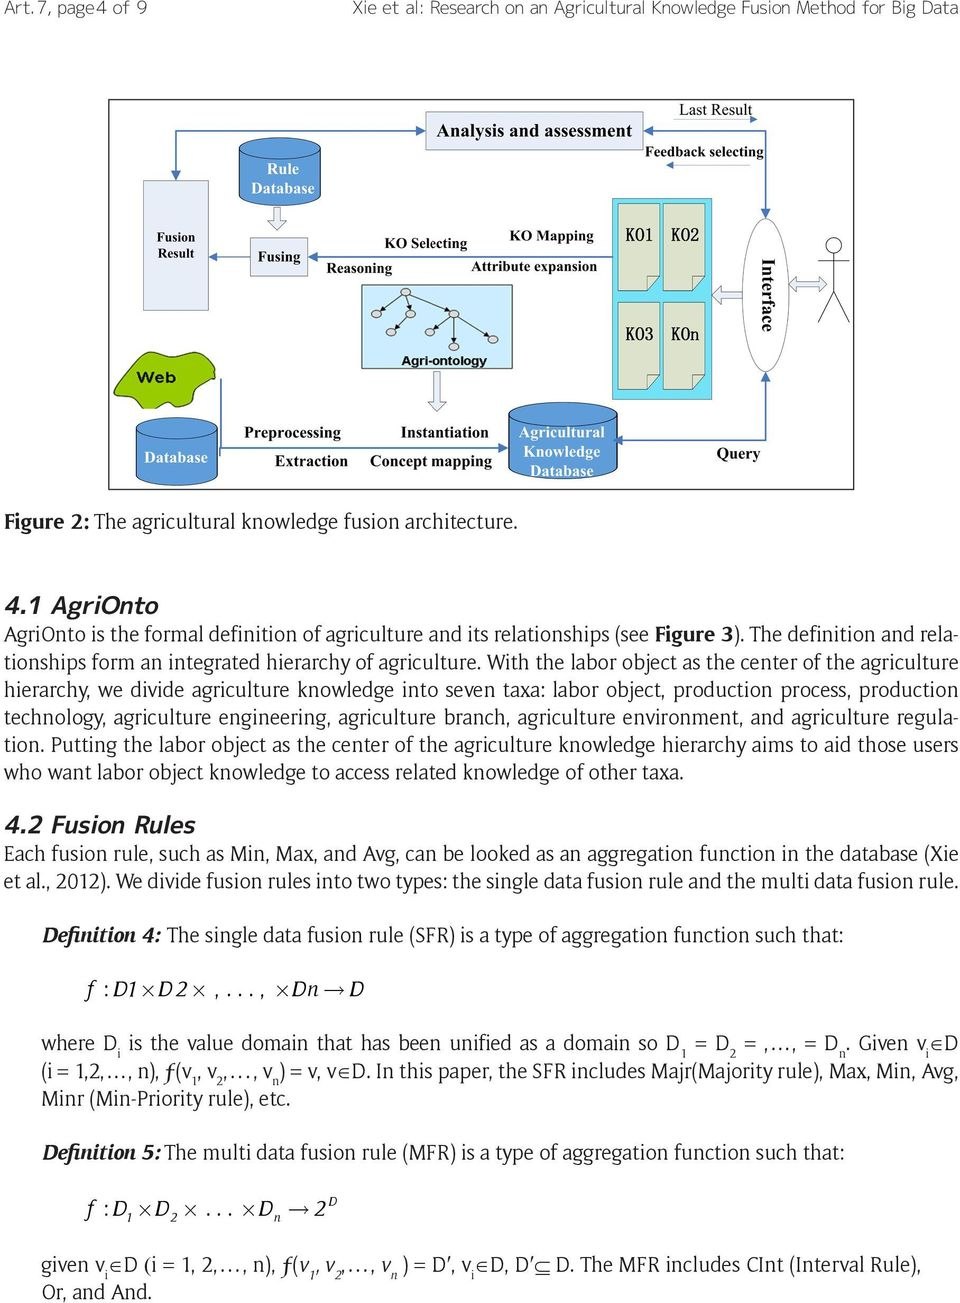 Research On An Agricultural Knowledge Fusion Method For Big Data Pdf Gmos Lan 012 Wiring Diagram Share The Knownledge With Labor Object As Center Of Agriculture Hierarchy We Divide